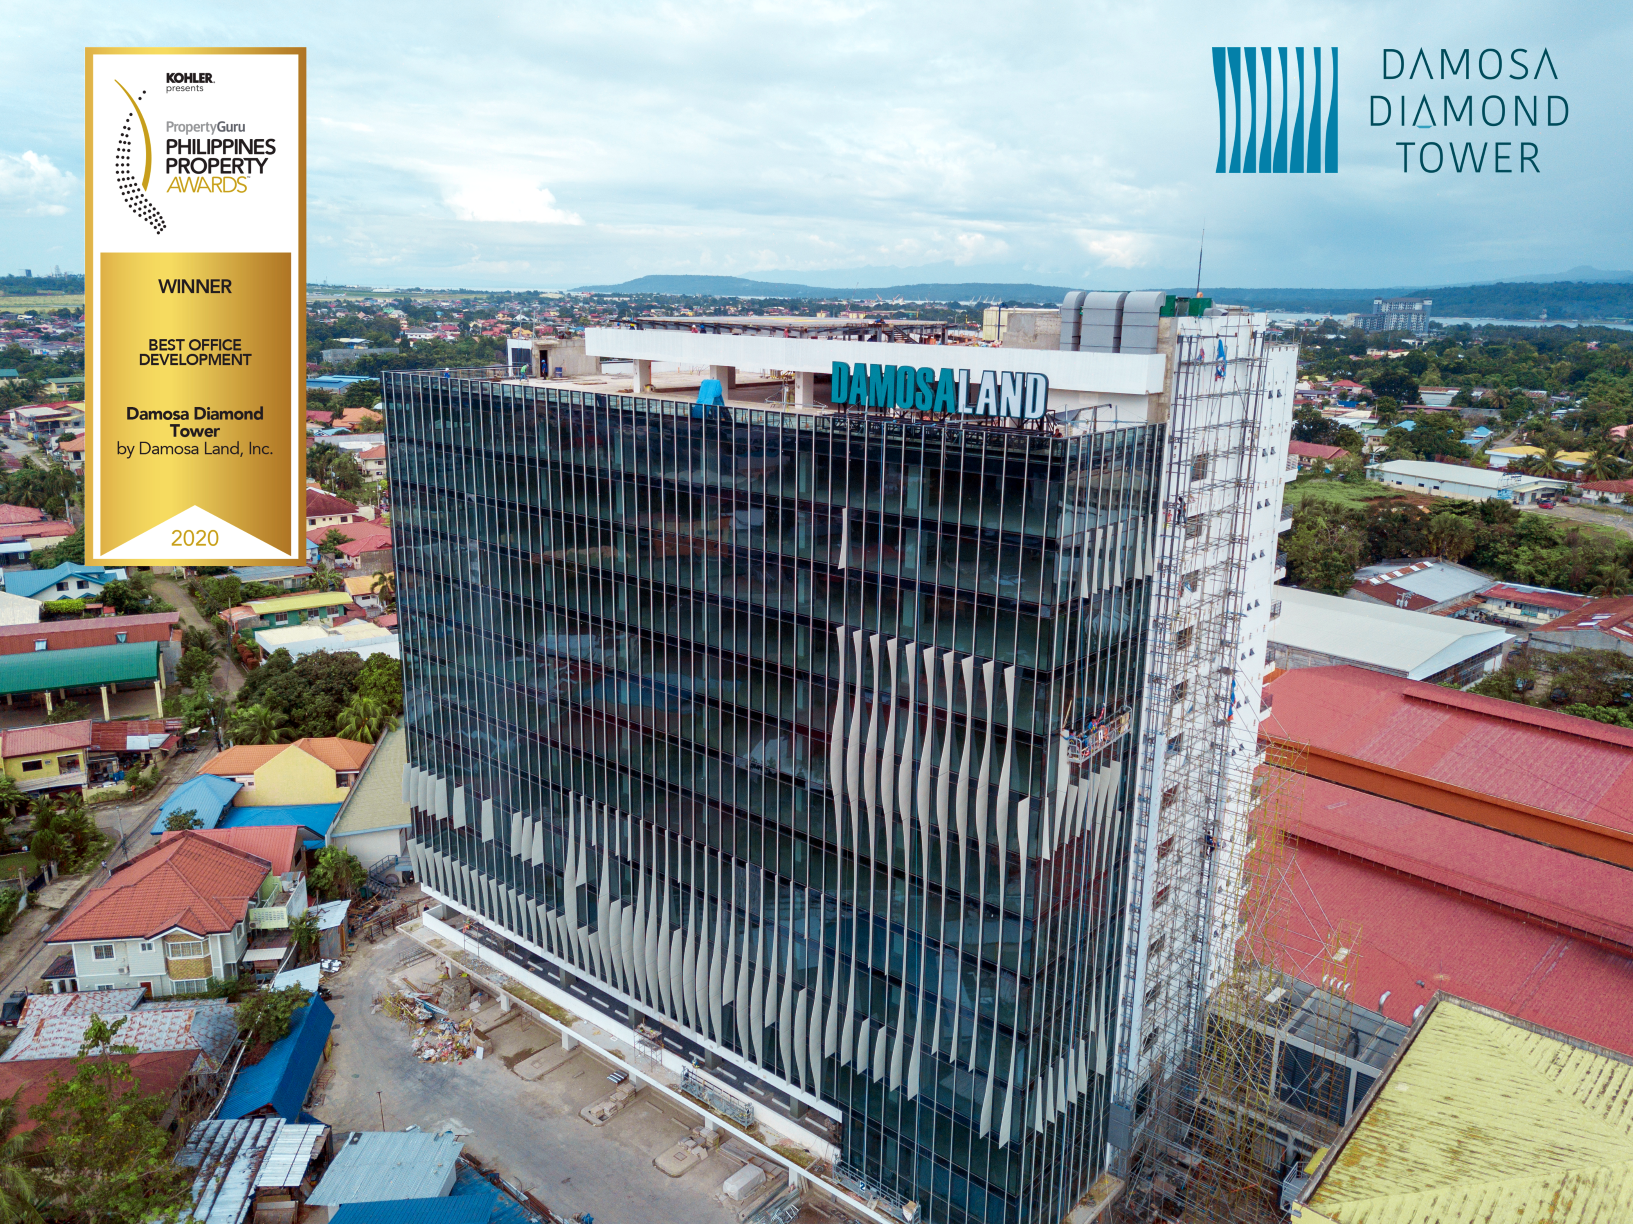 Damosa Diamond Tower, Davao's newest gem, attracts professional services firm